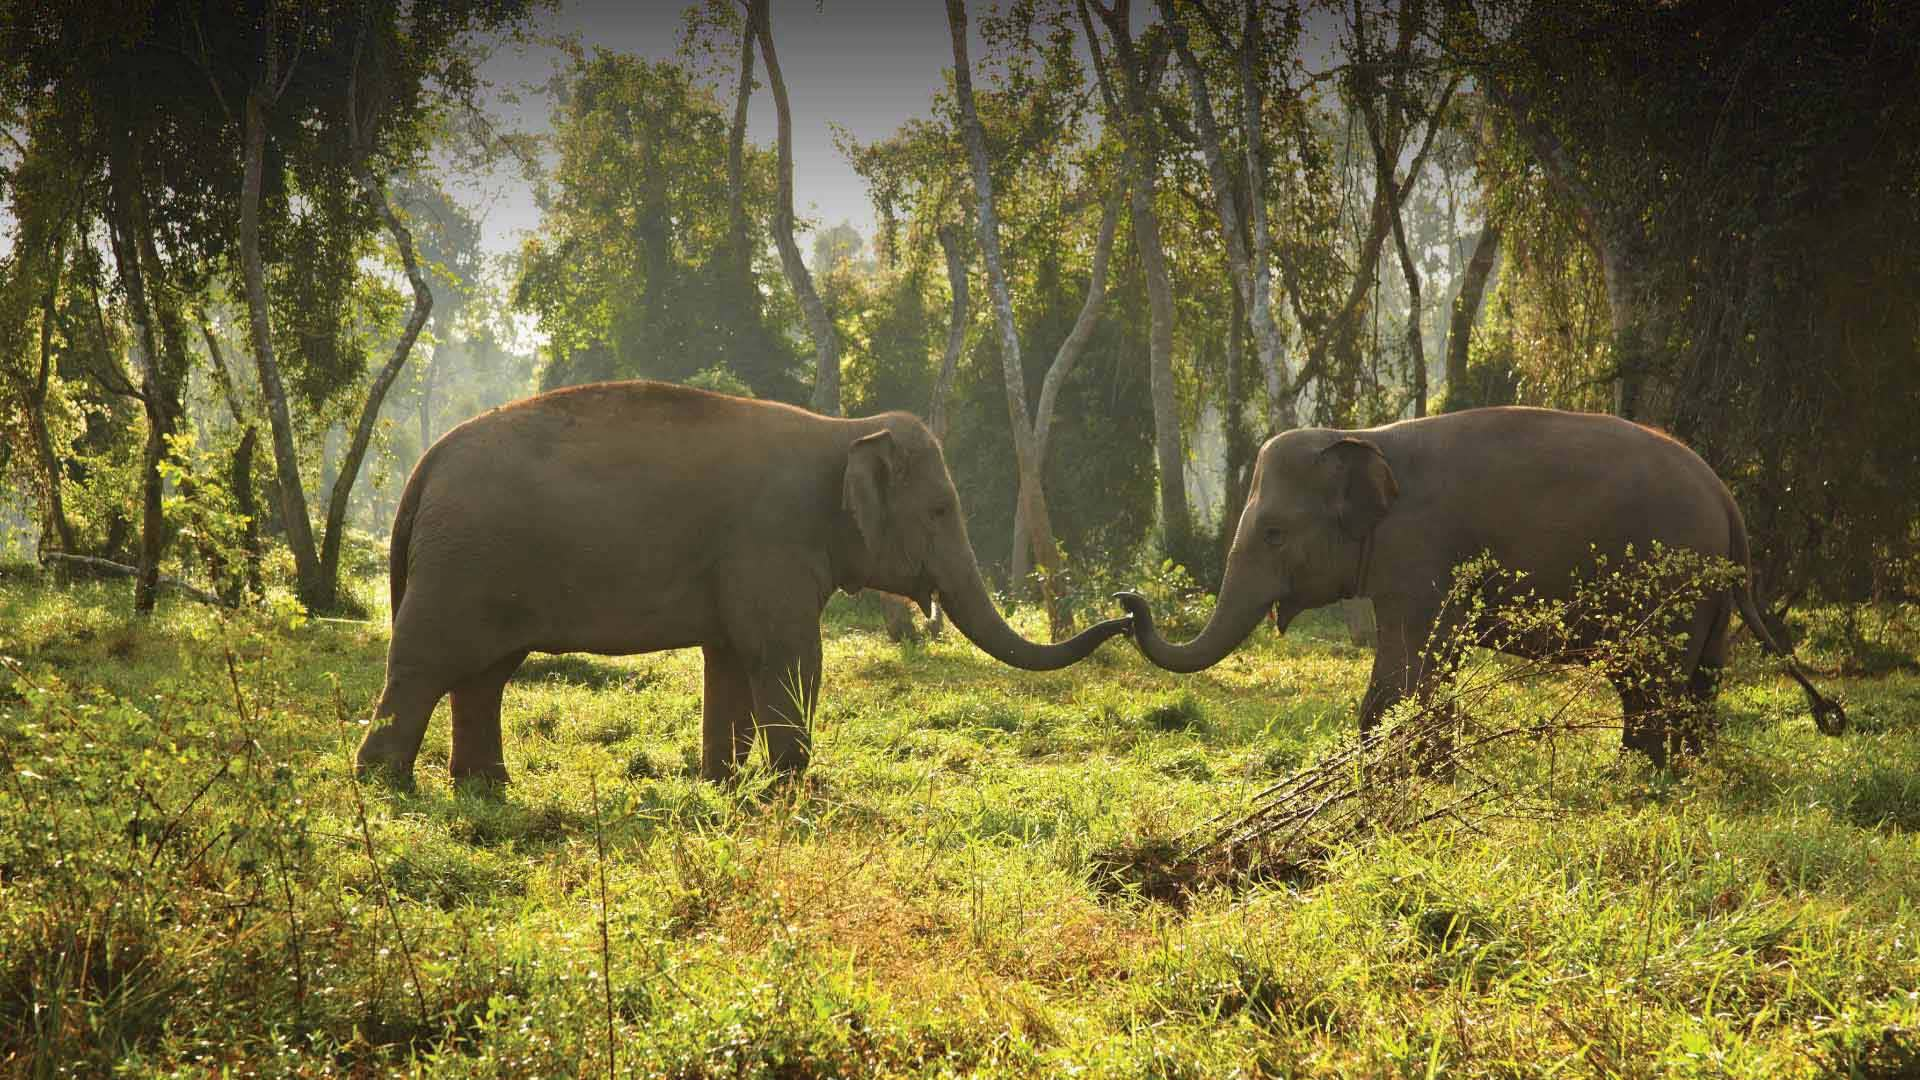 https://assets.anantara.com/image/upload/q_auto,f_auto/media/minor/anantara/images/anantara-golden-triangle-elephant-camp--resort/the-resort/desktop-banner/anantara_golden_triangle_elephant_couple_header_1920x1080.jpg